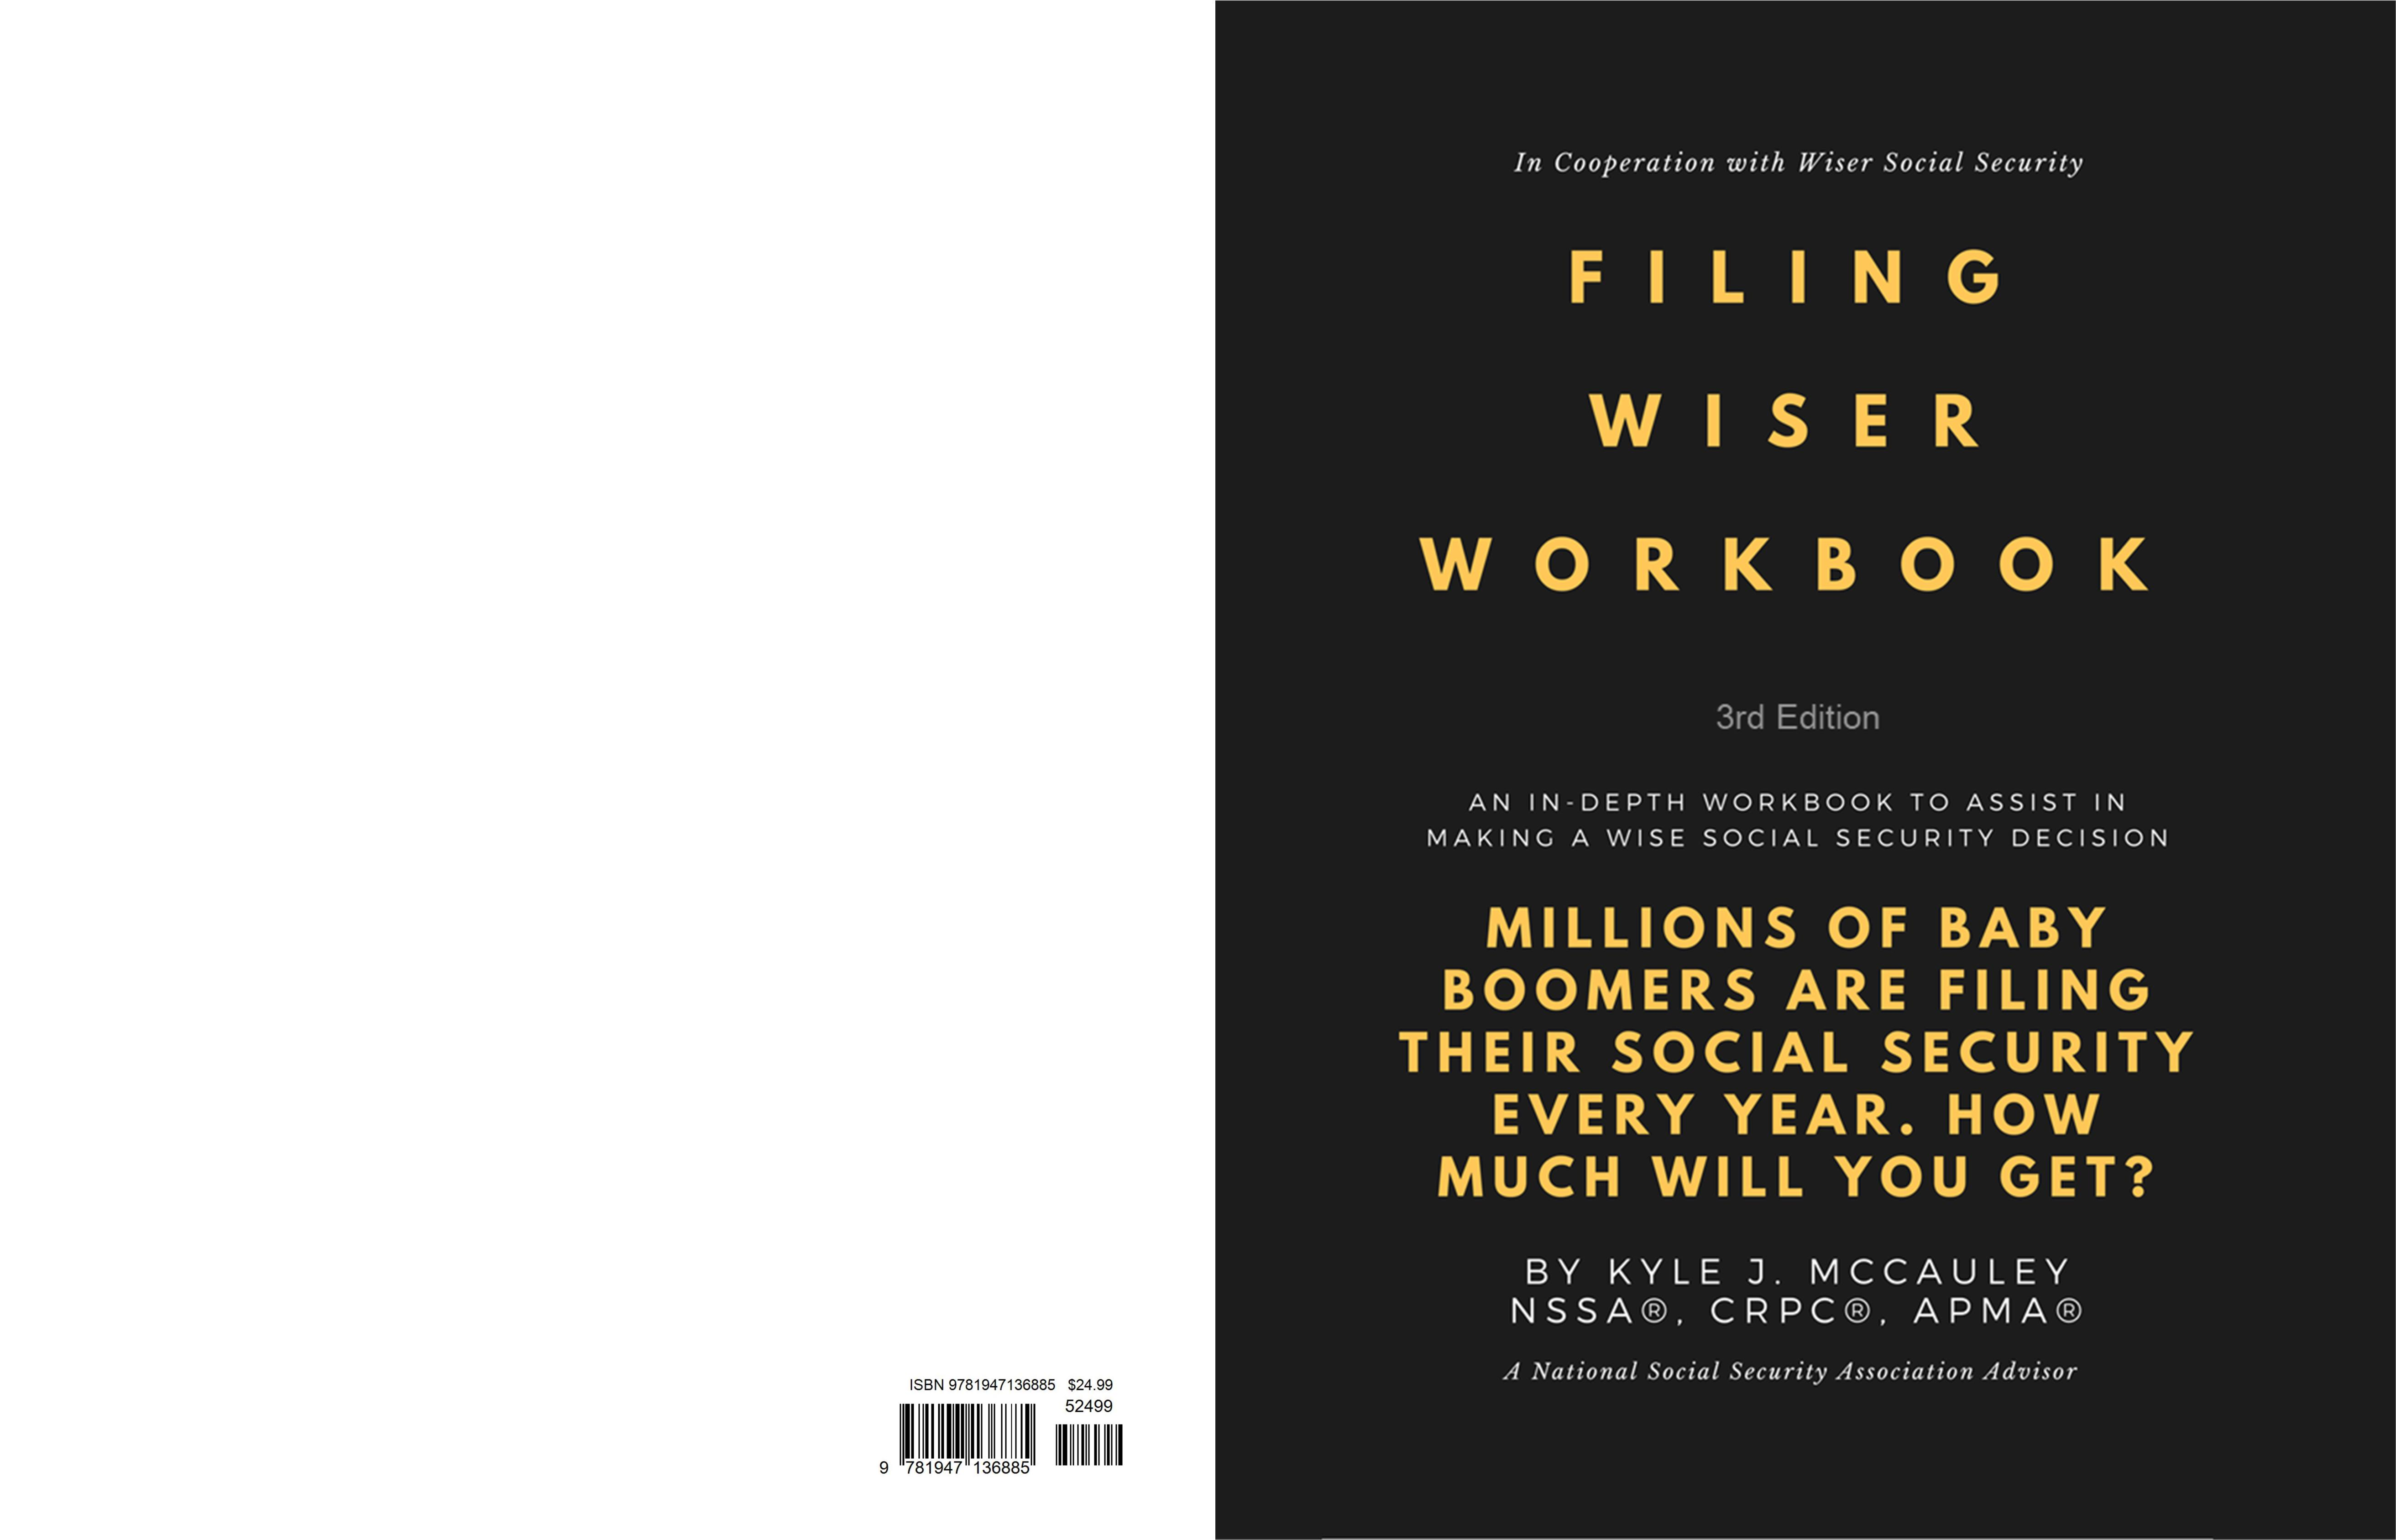 Filing Wiser Workbook cover image